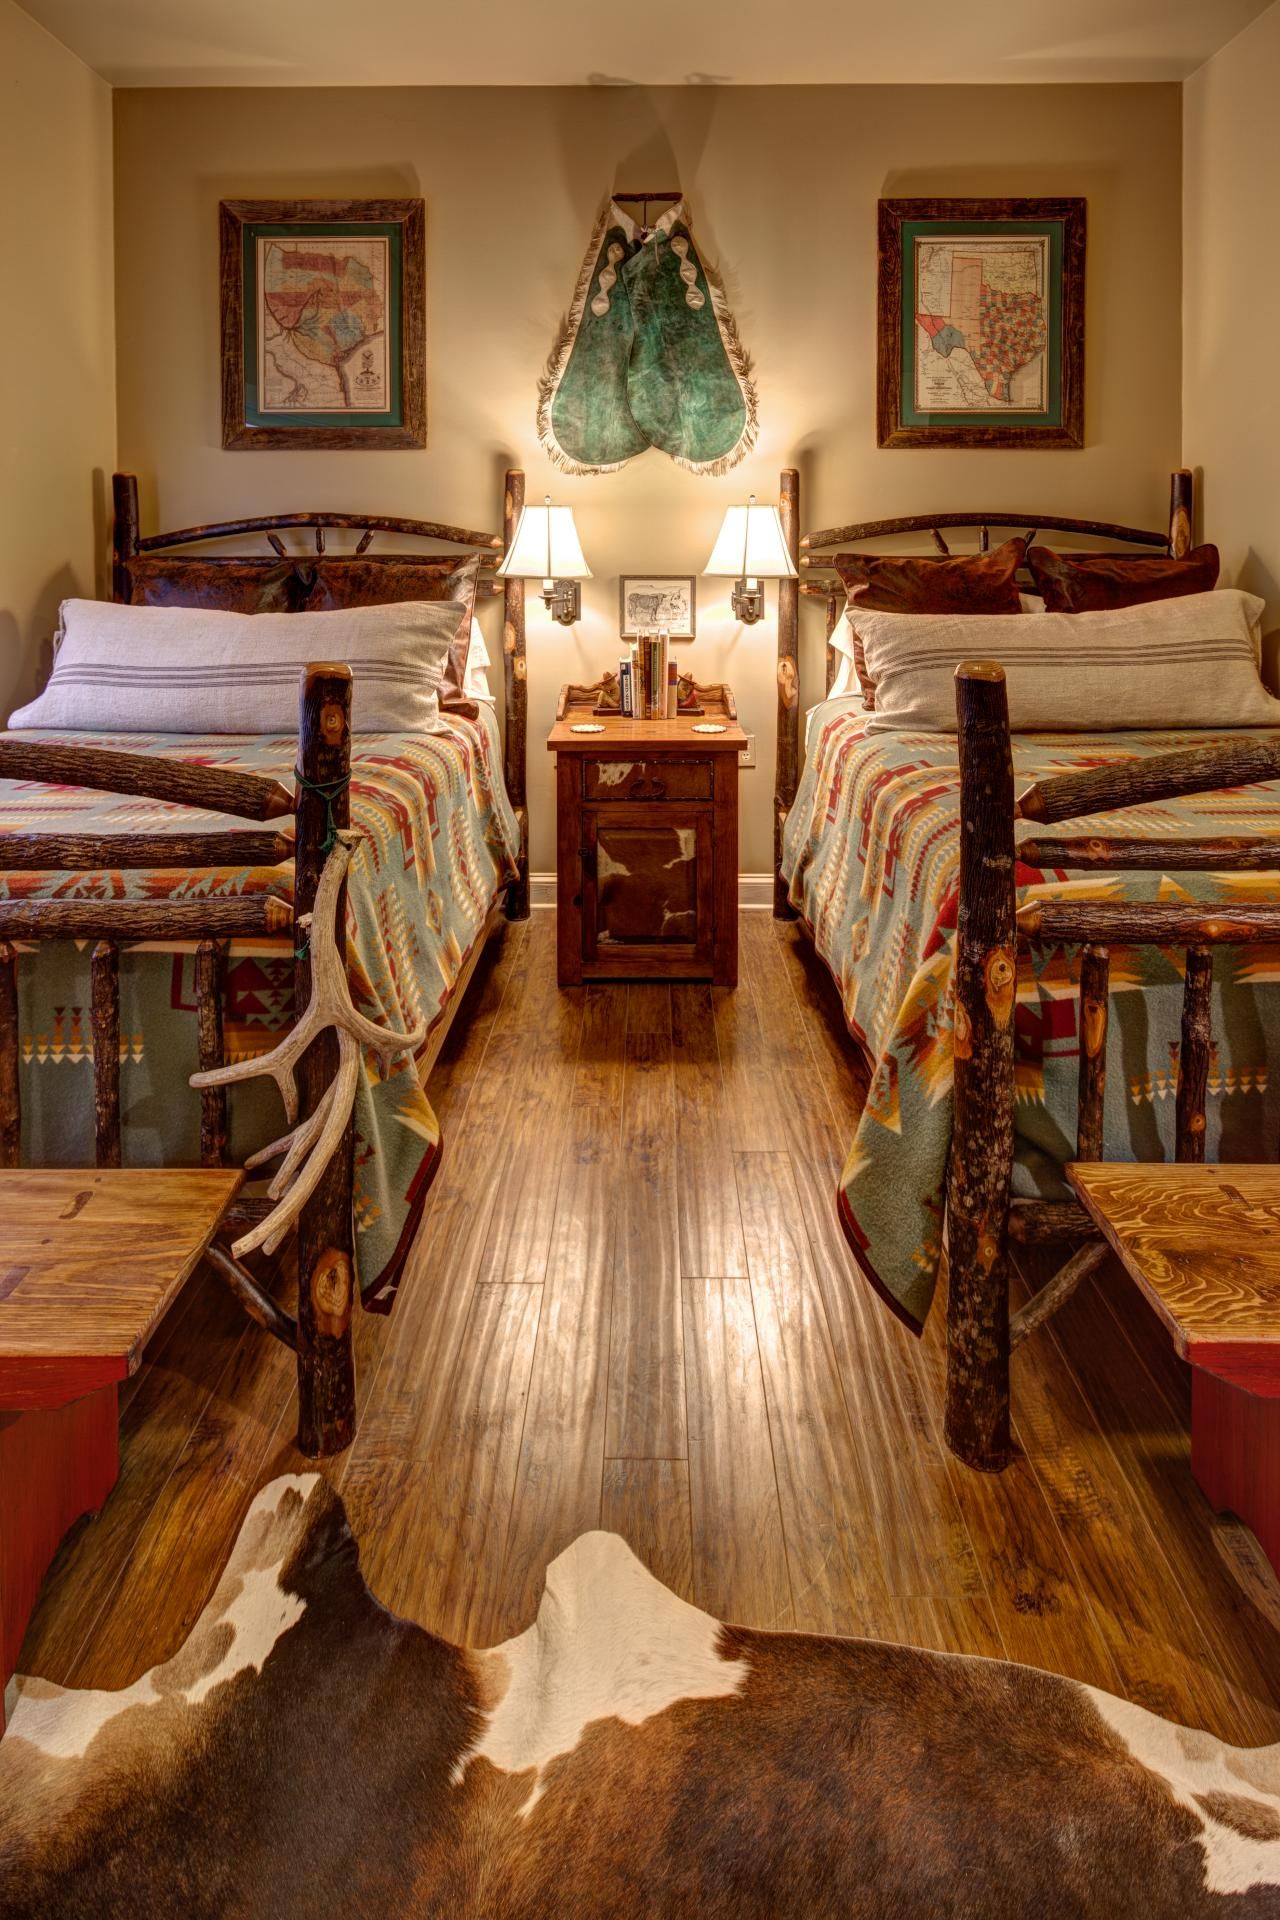 Rustic and Southwestern styles combine expertly in this lodge ...